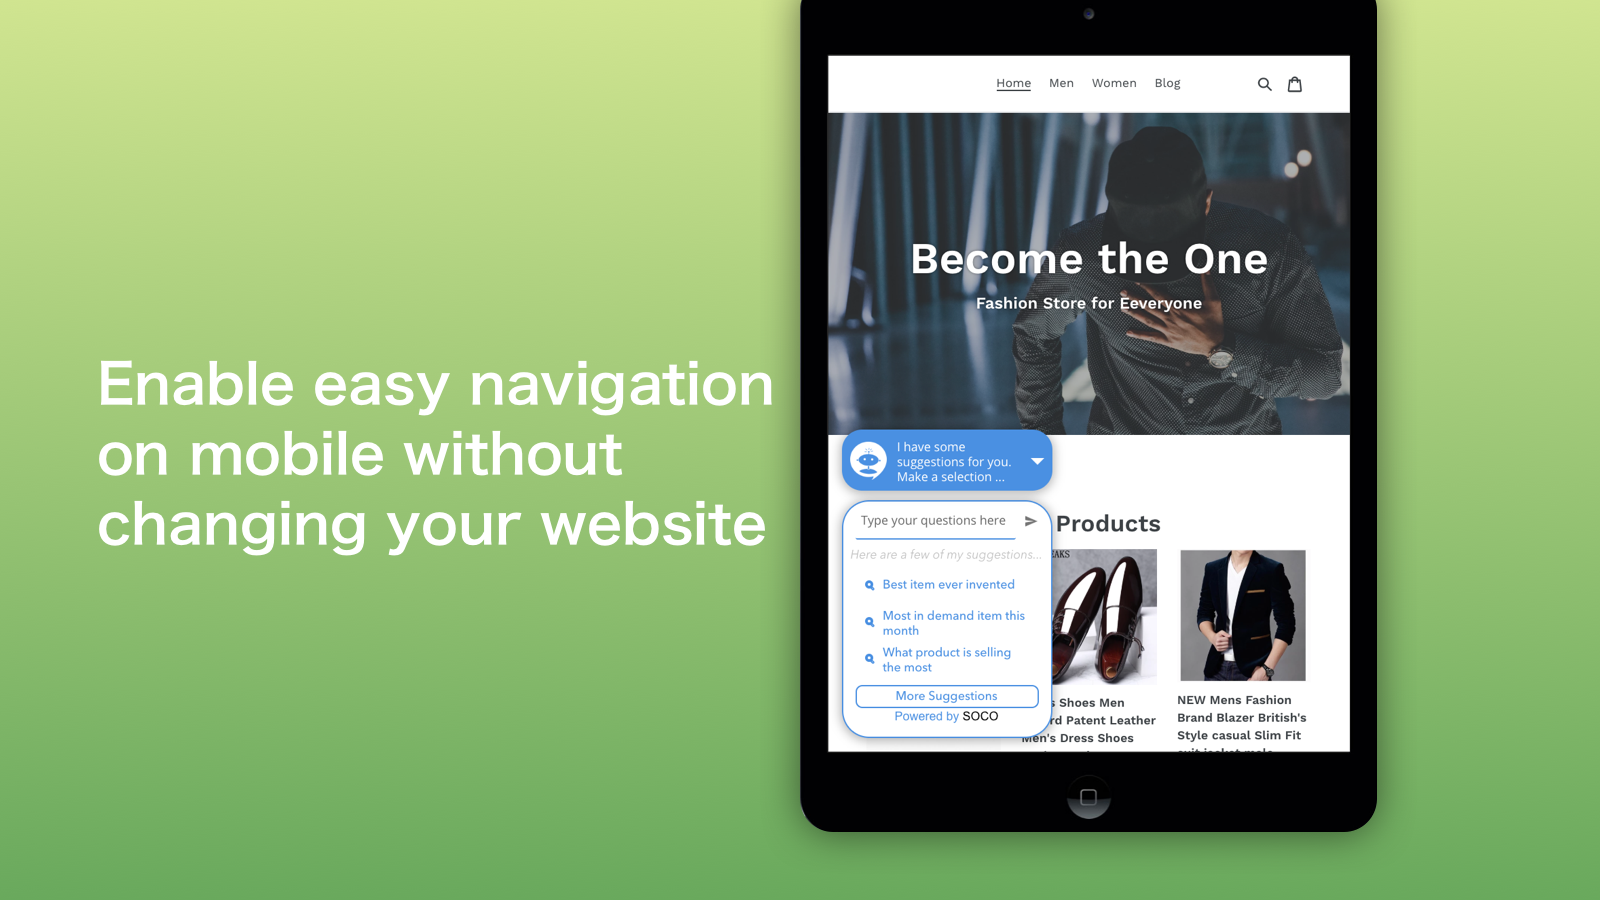 Enable easy navigation on mobile without changing your website